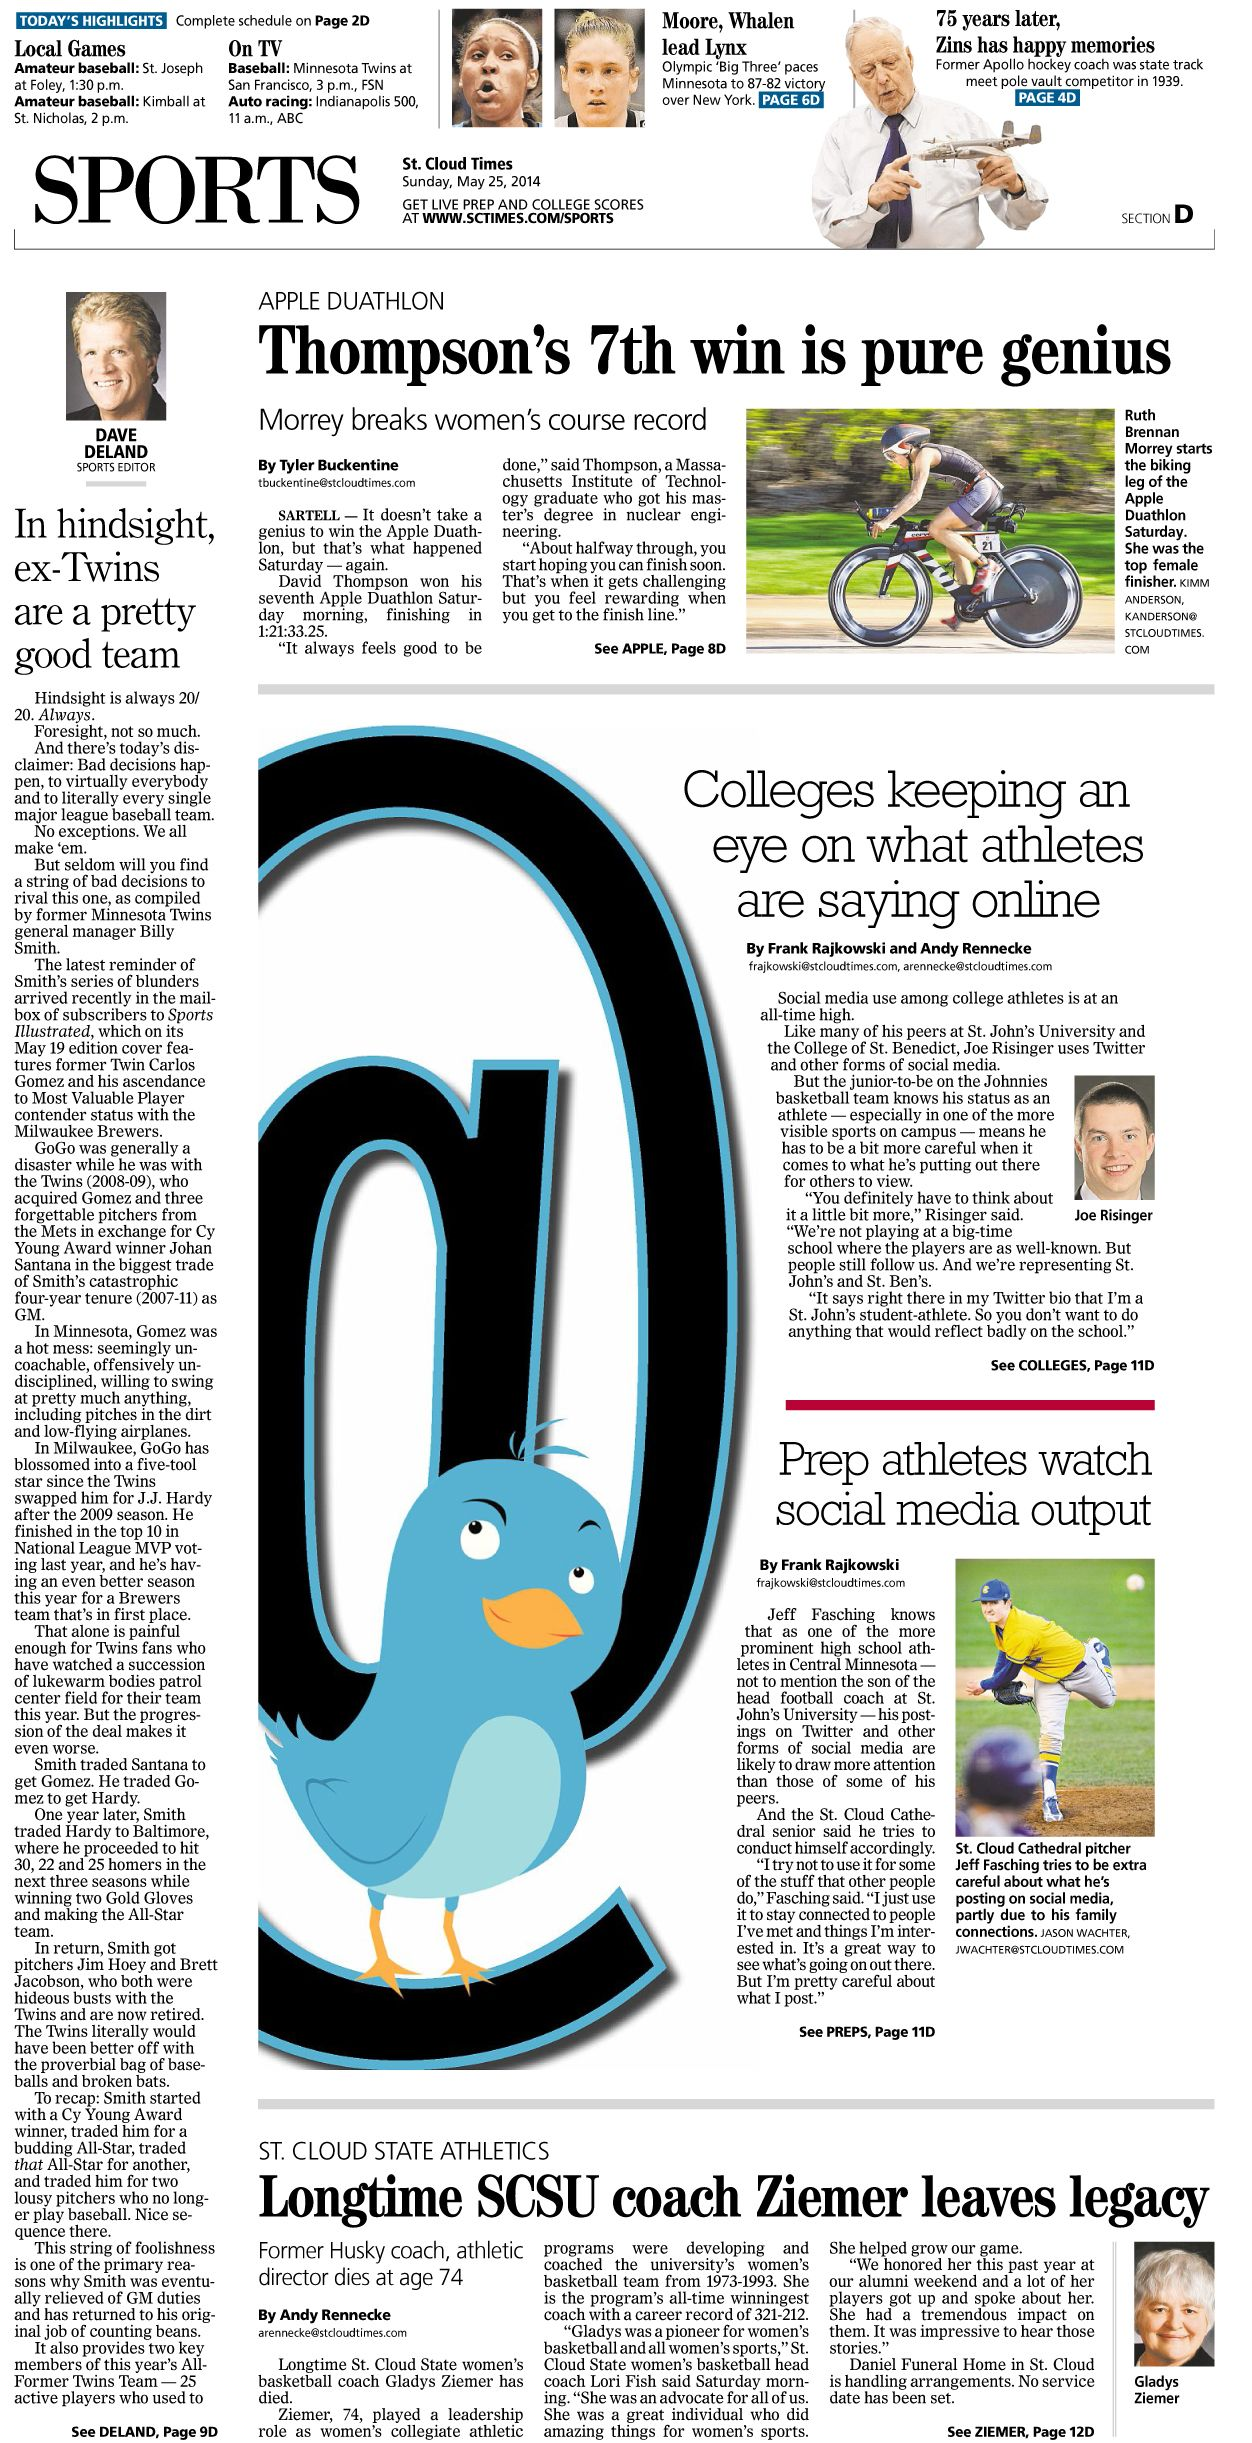 News Design: St. Cloud Times' May 25, 2014 sports cover